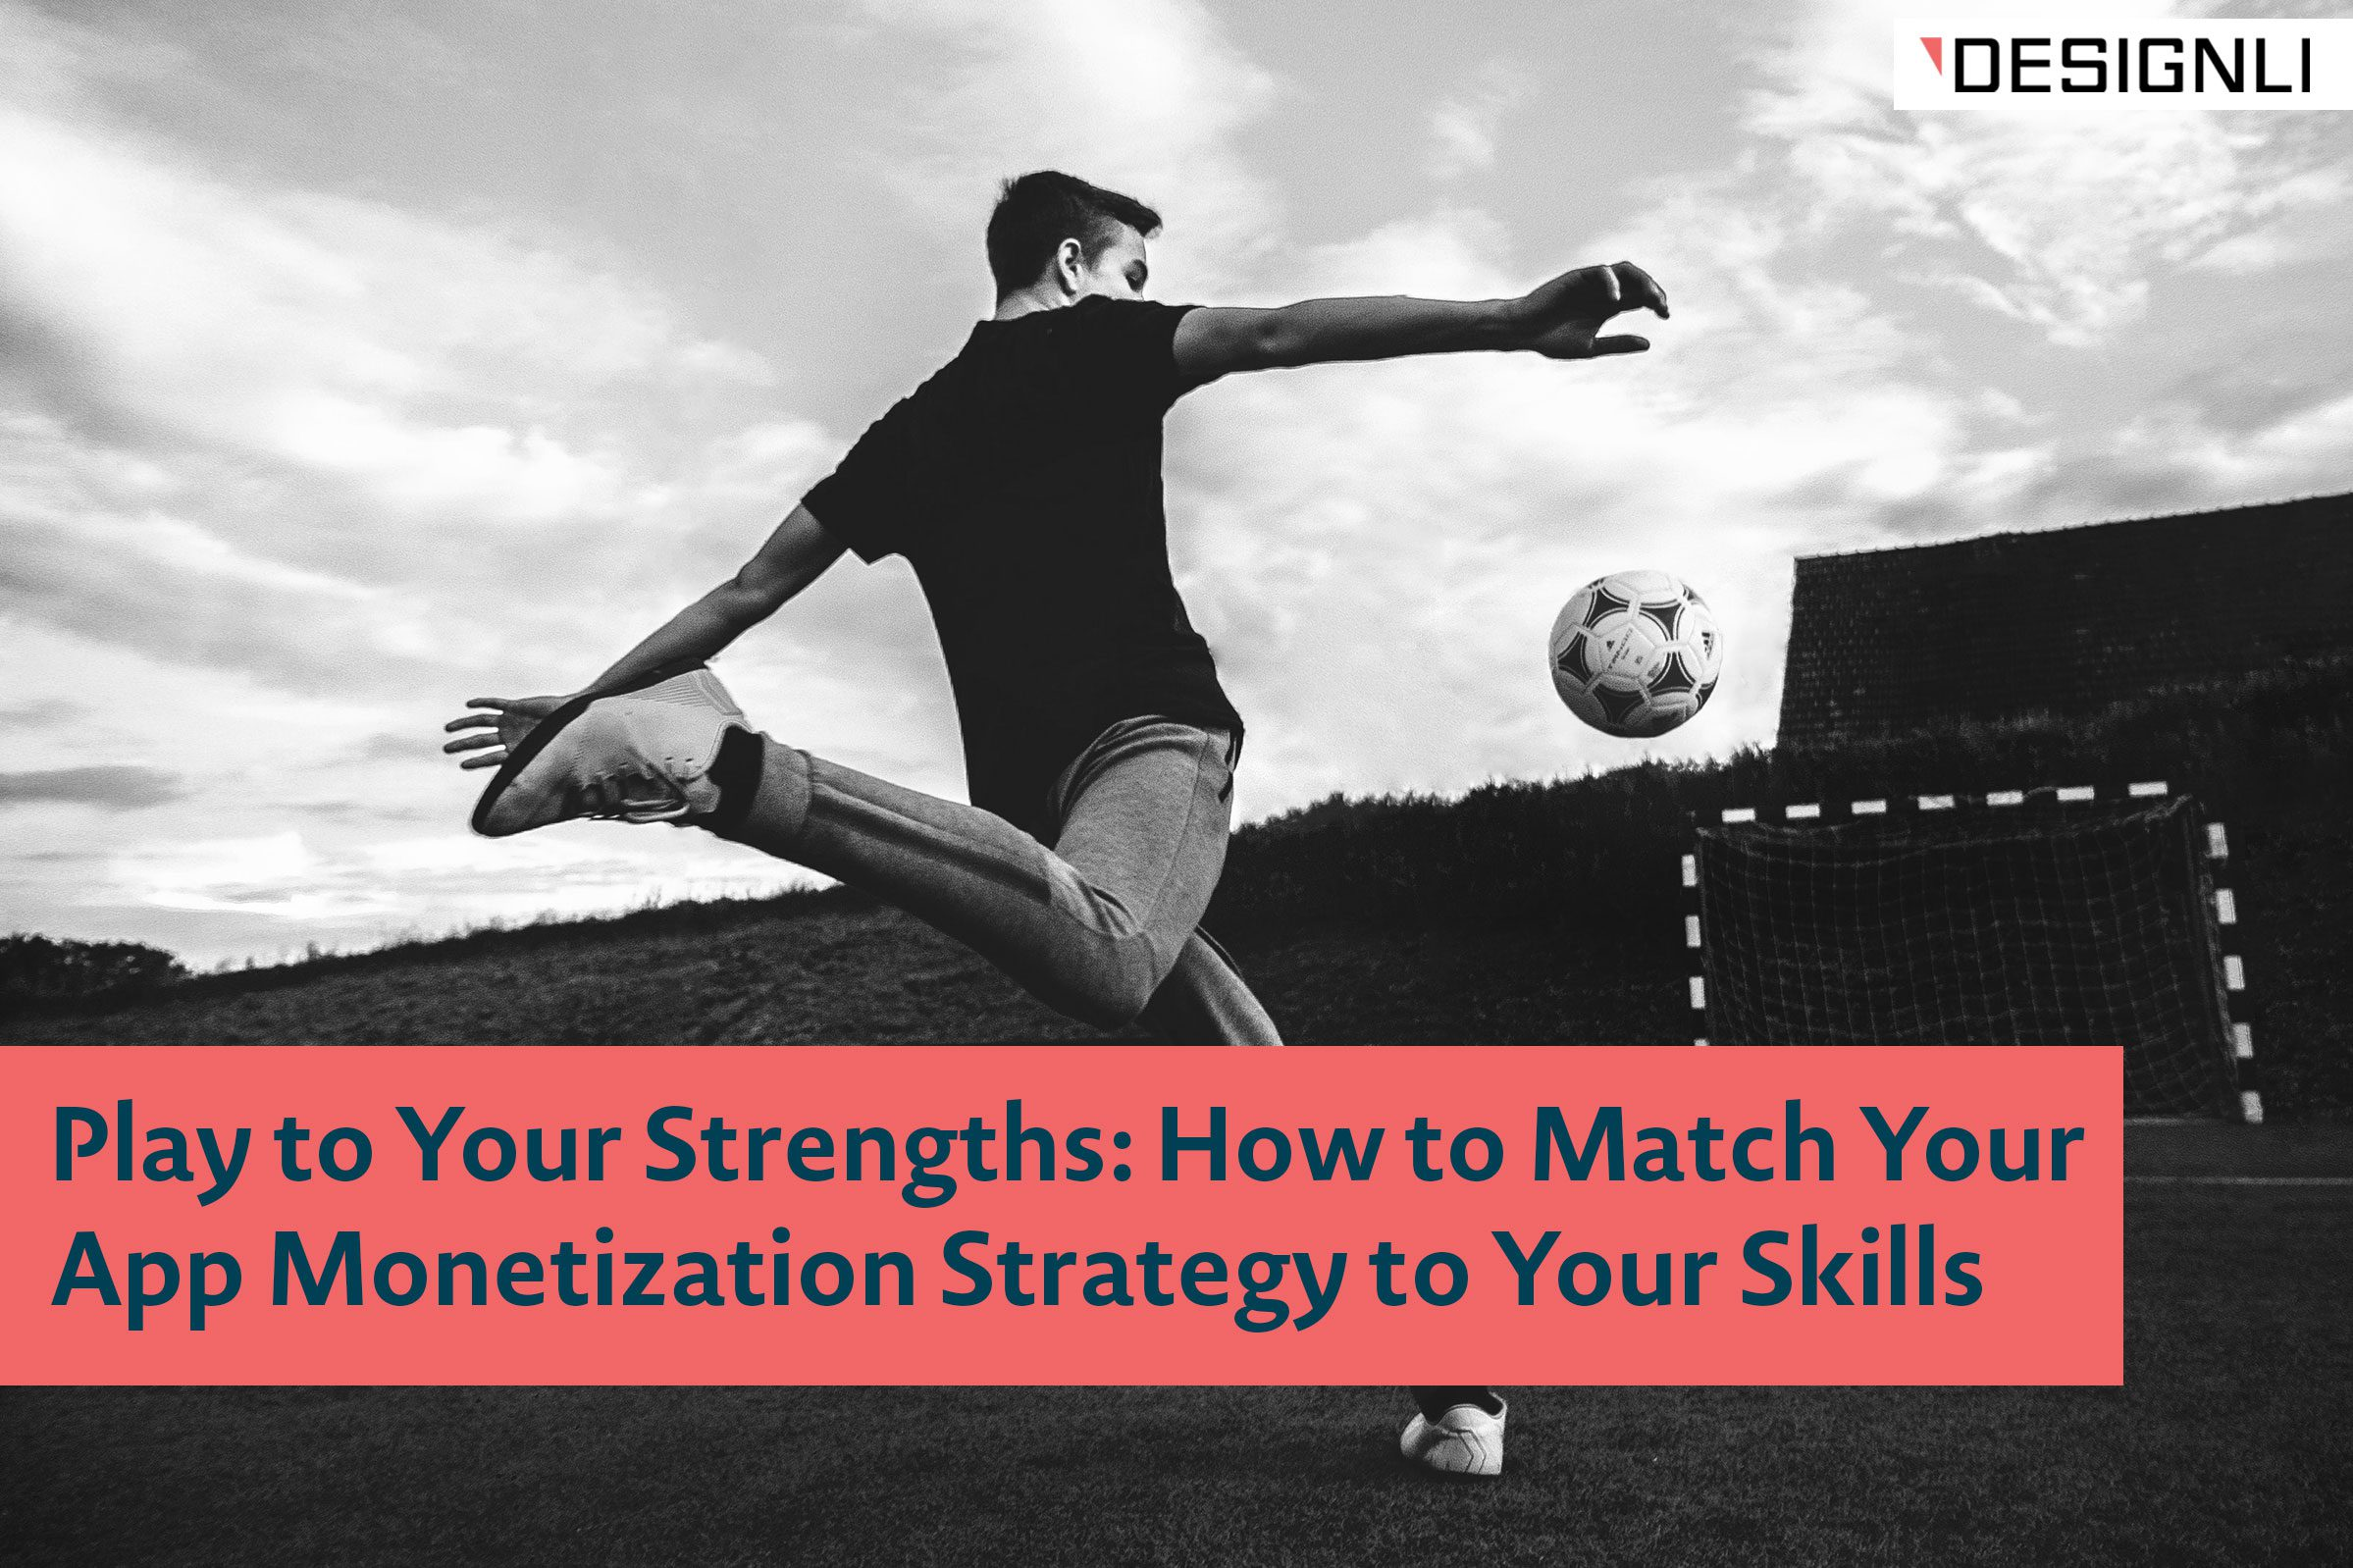 match your app monetization strategy to your skills